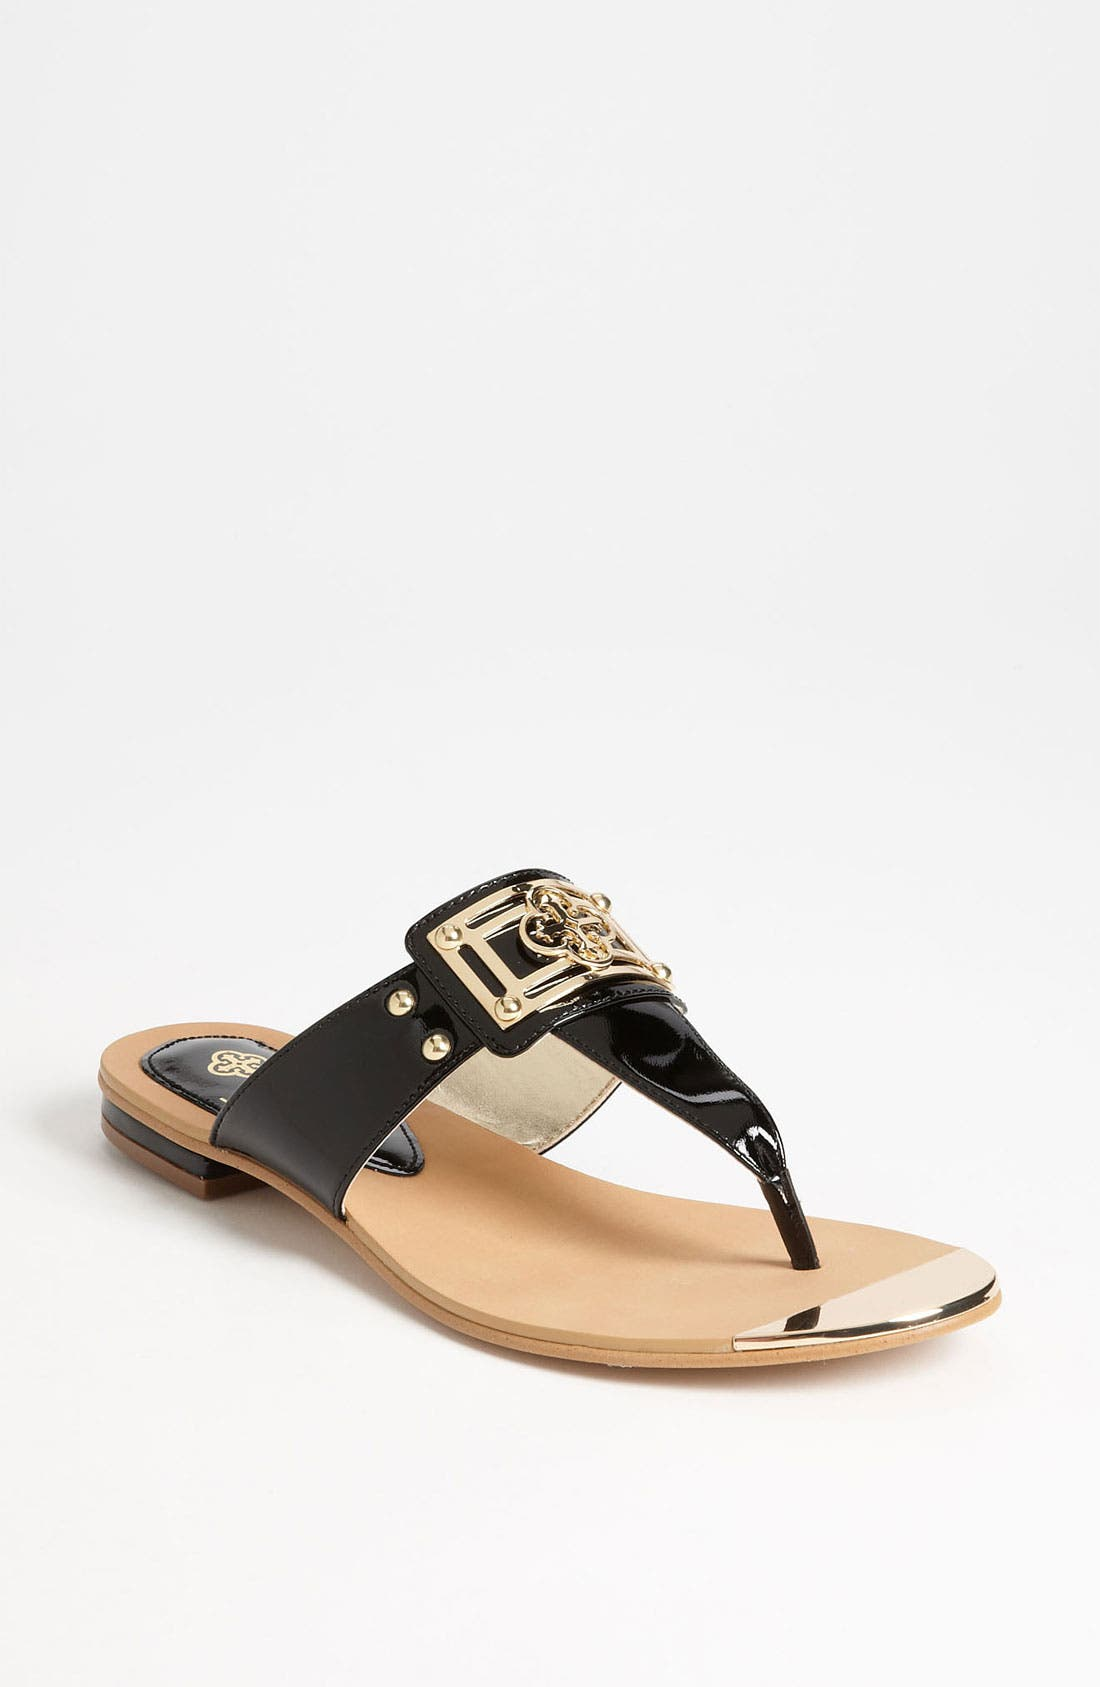 Alternate Image 1 Selected - Isolá 'Alary II' Sandal